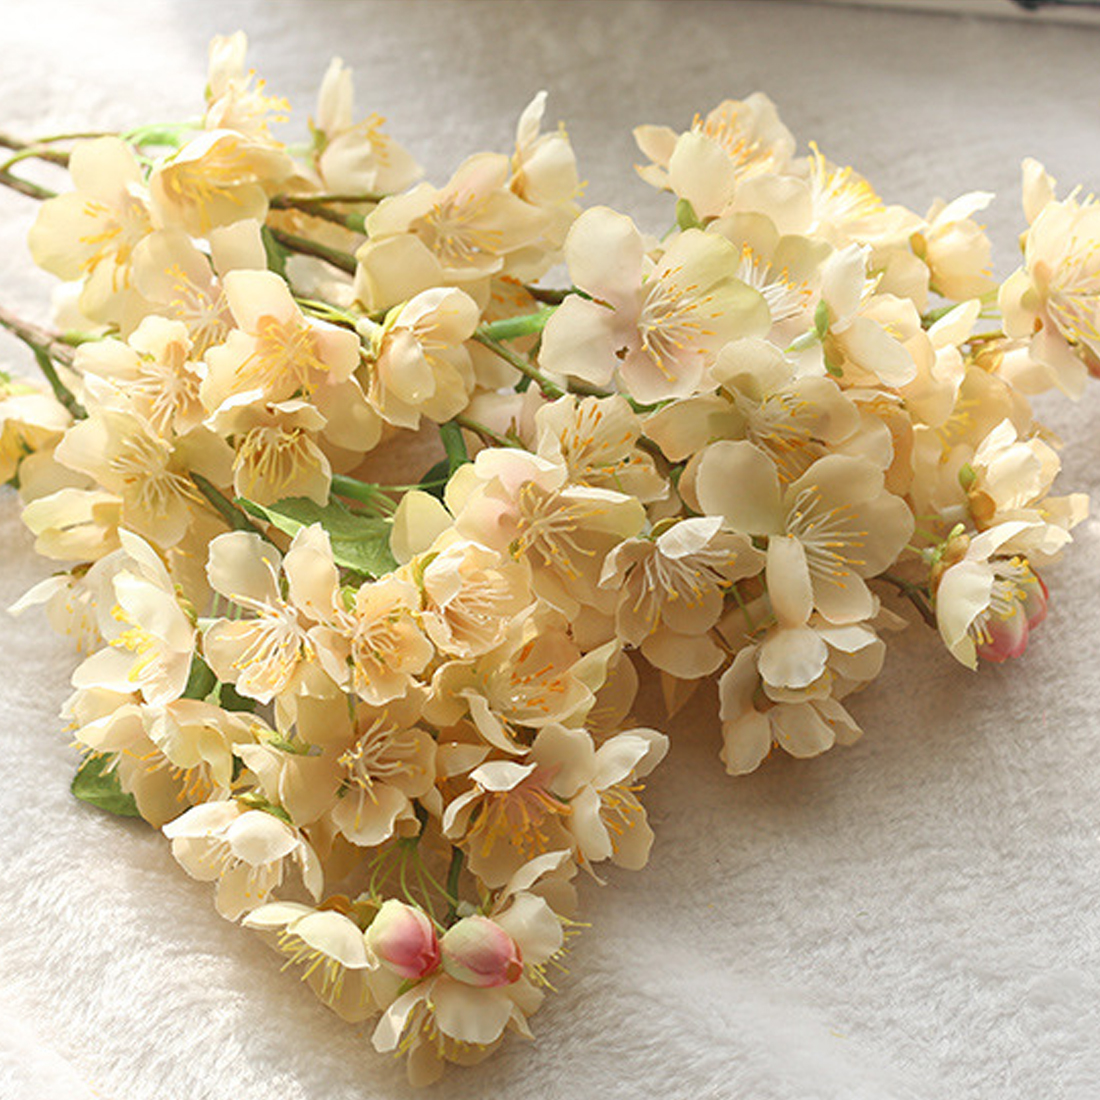 525cm fake flowers wedding home party decor supplies artificial 525cm fake flowers wedding home party decor supplies artificial flowers cherry blossom bouquet beautiful vivid japanese sakura in artificial dried izmirmasajfo